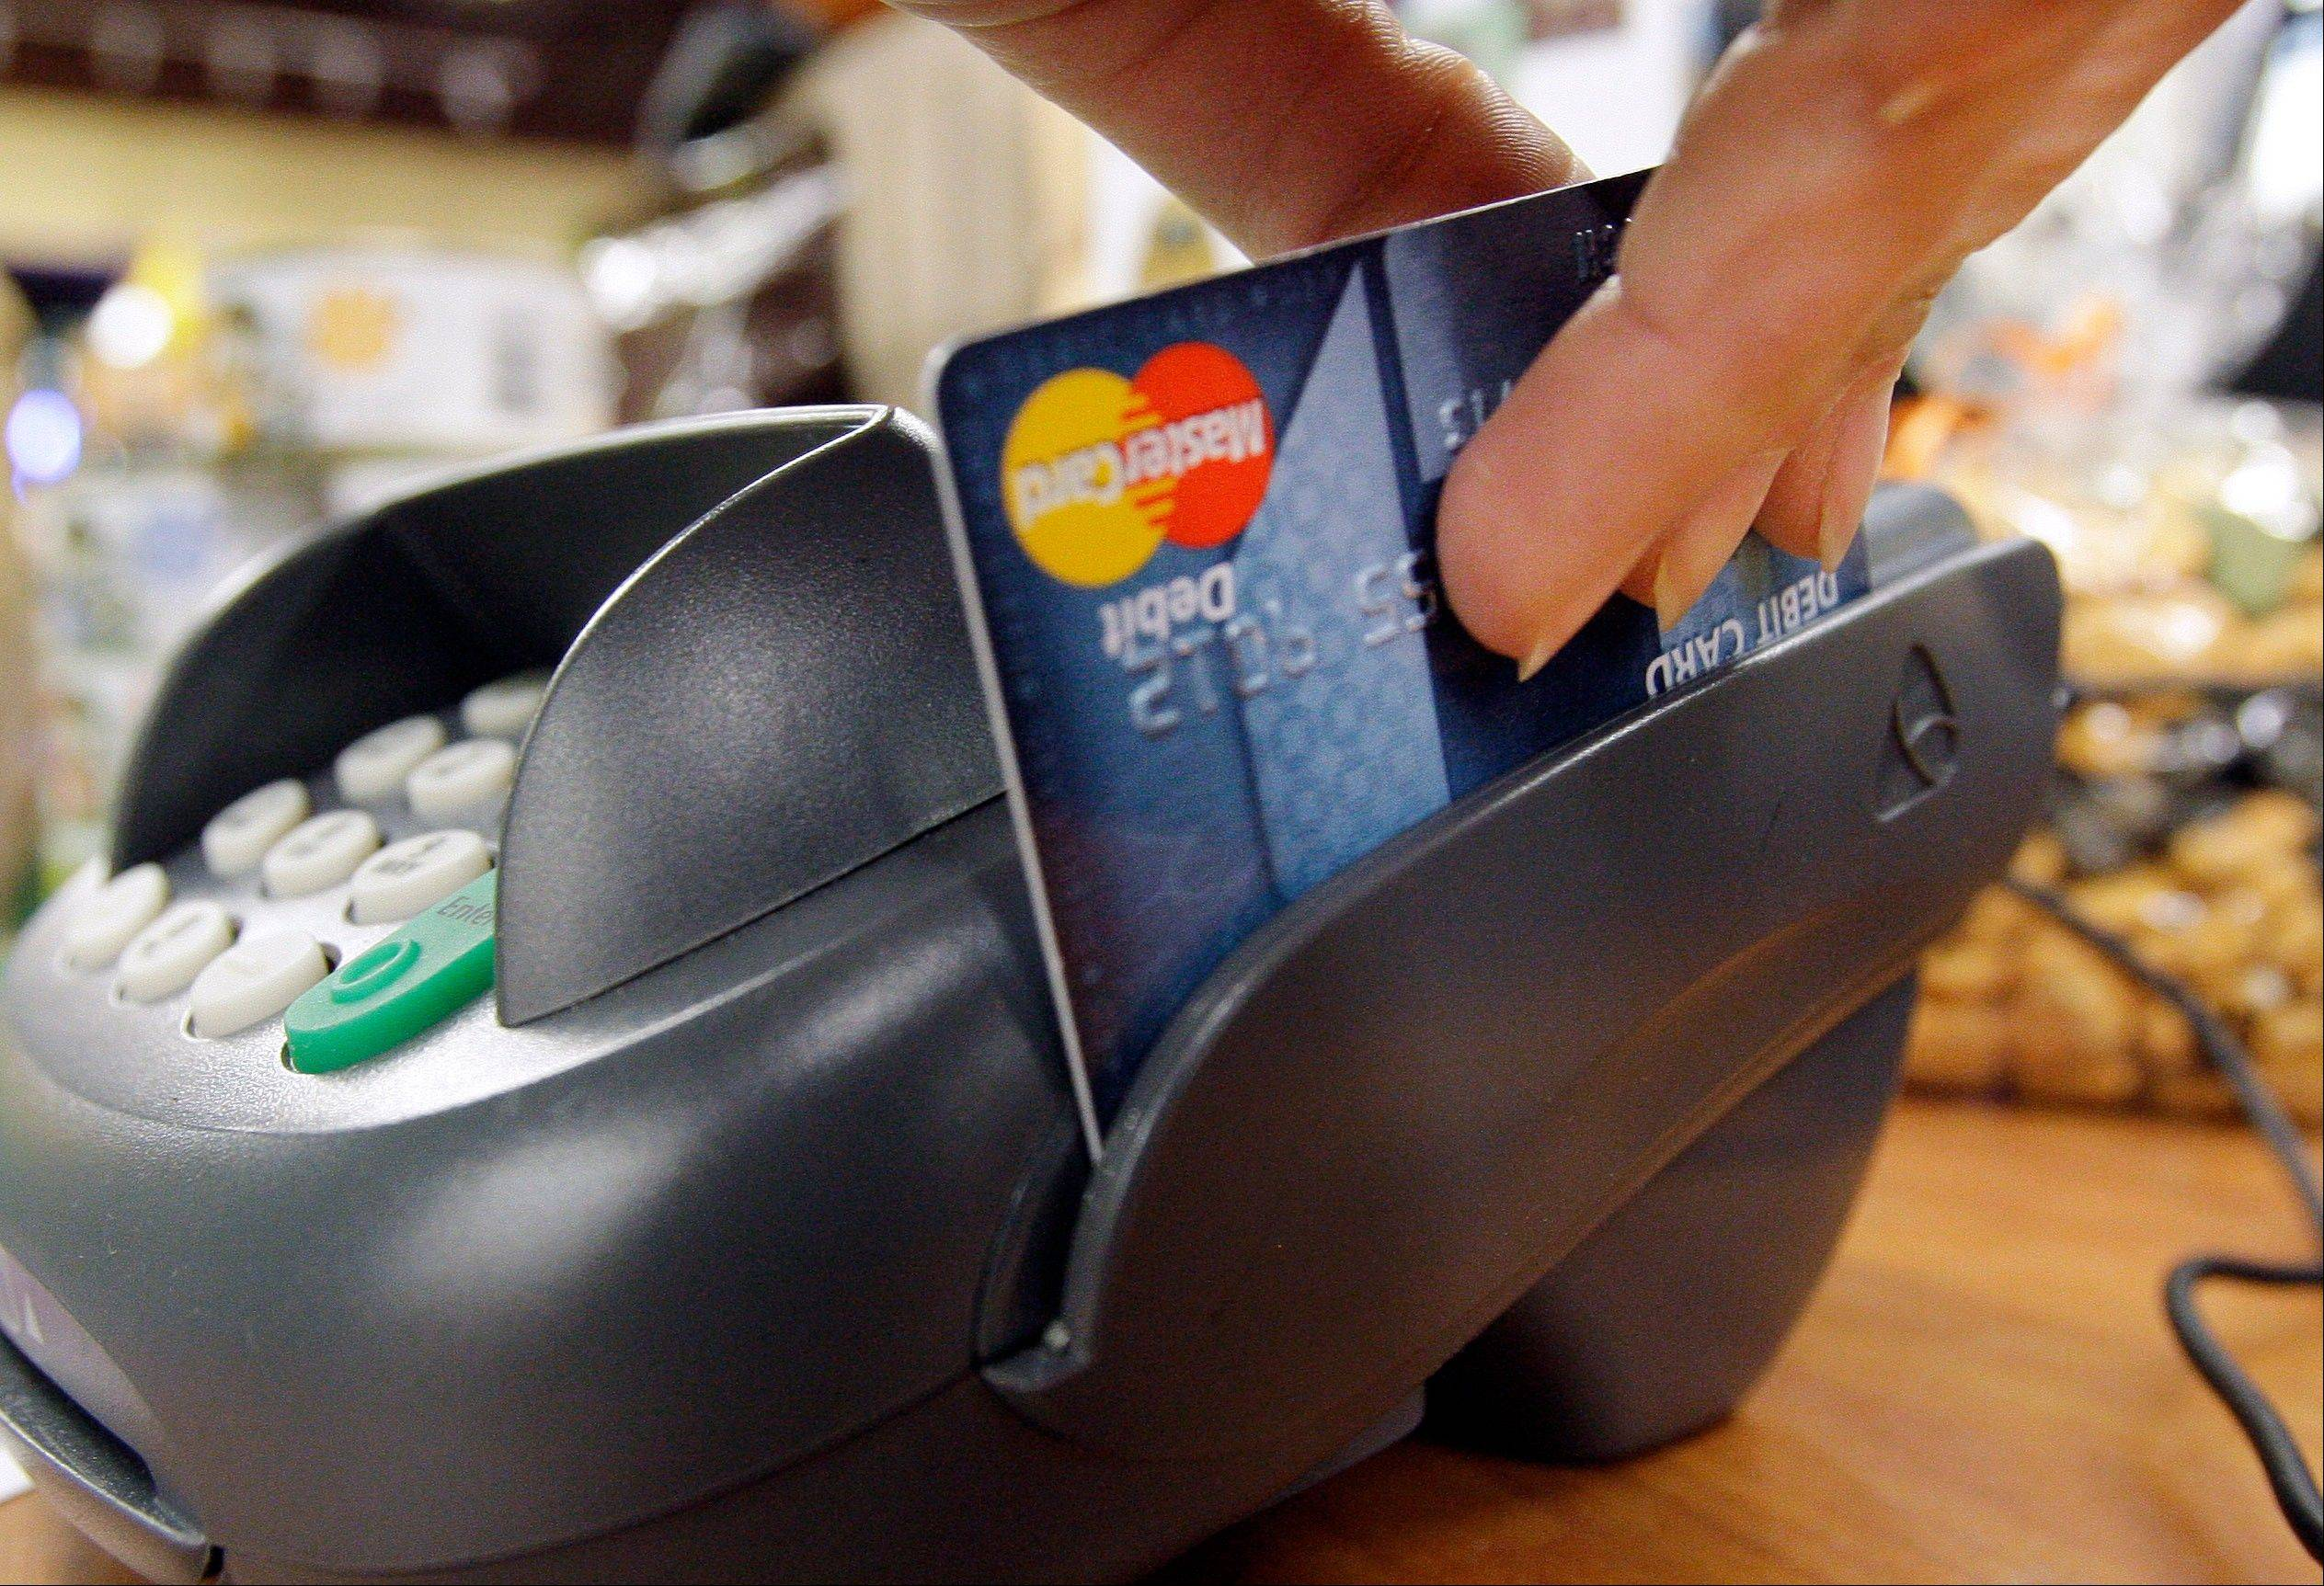 For many people without bank accounts, prepaid debit cards have become essential.